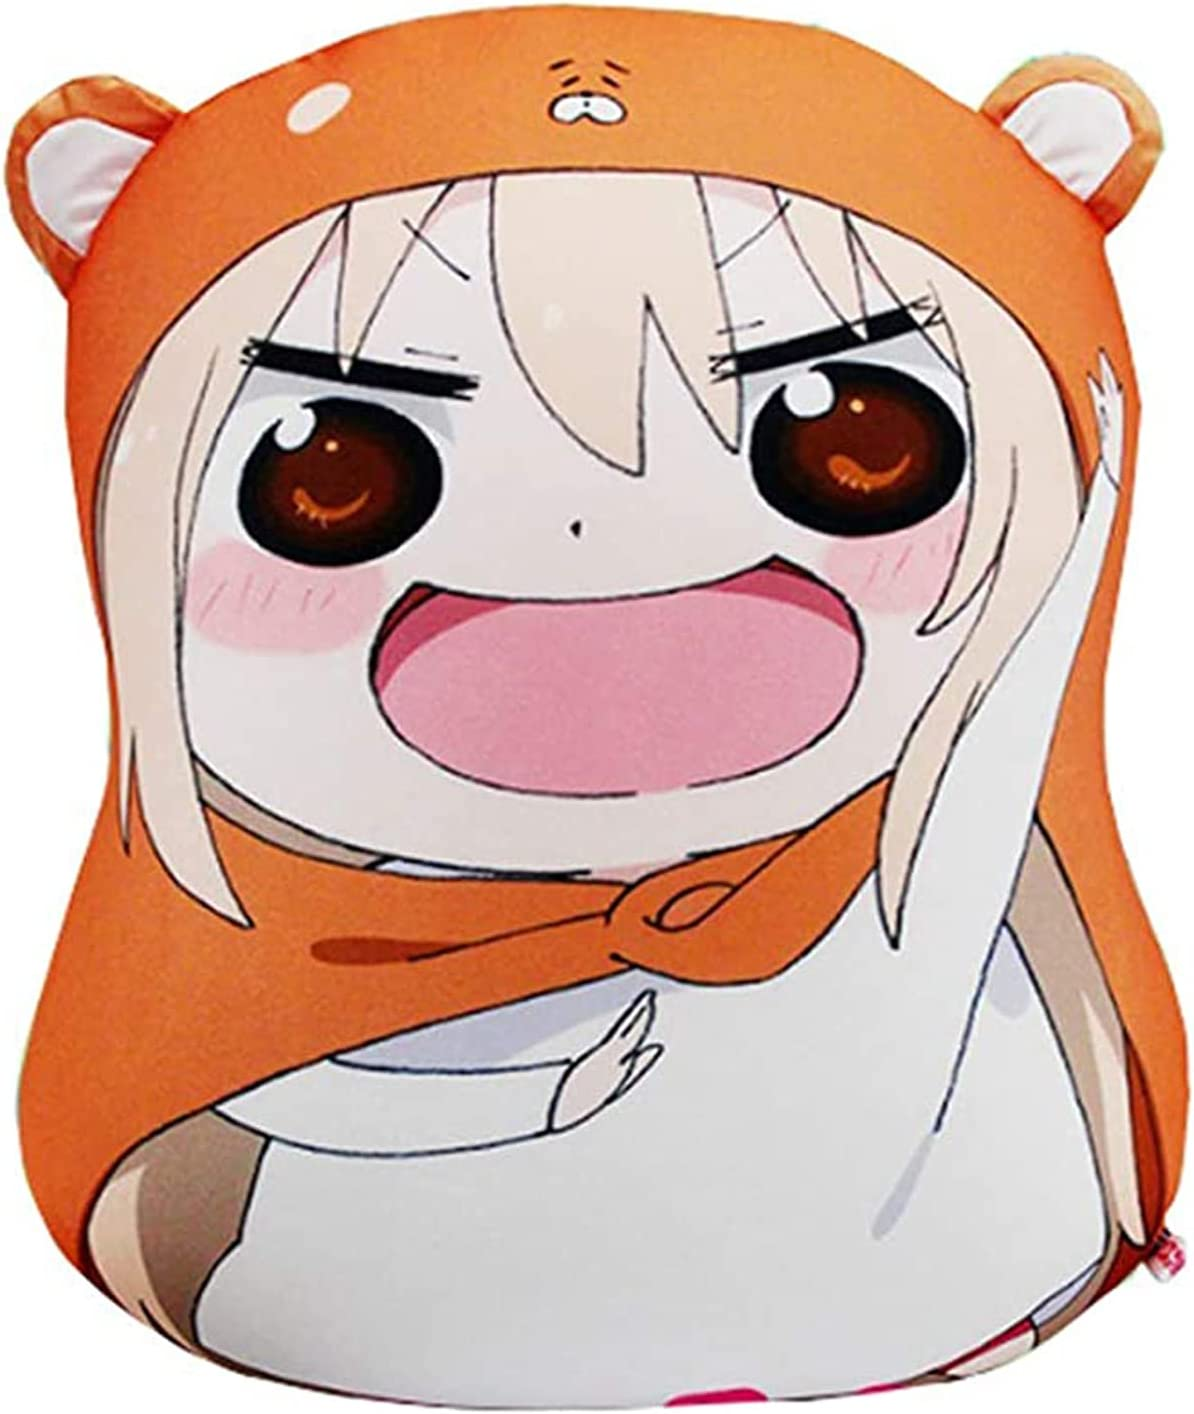 50cm Himouto Umaru-Chan Anime Super popular specialty store Plush Ranking TOP11 Cospla Characters Toy